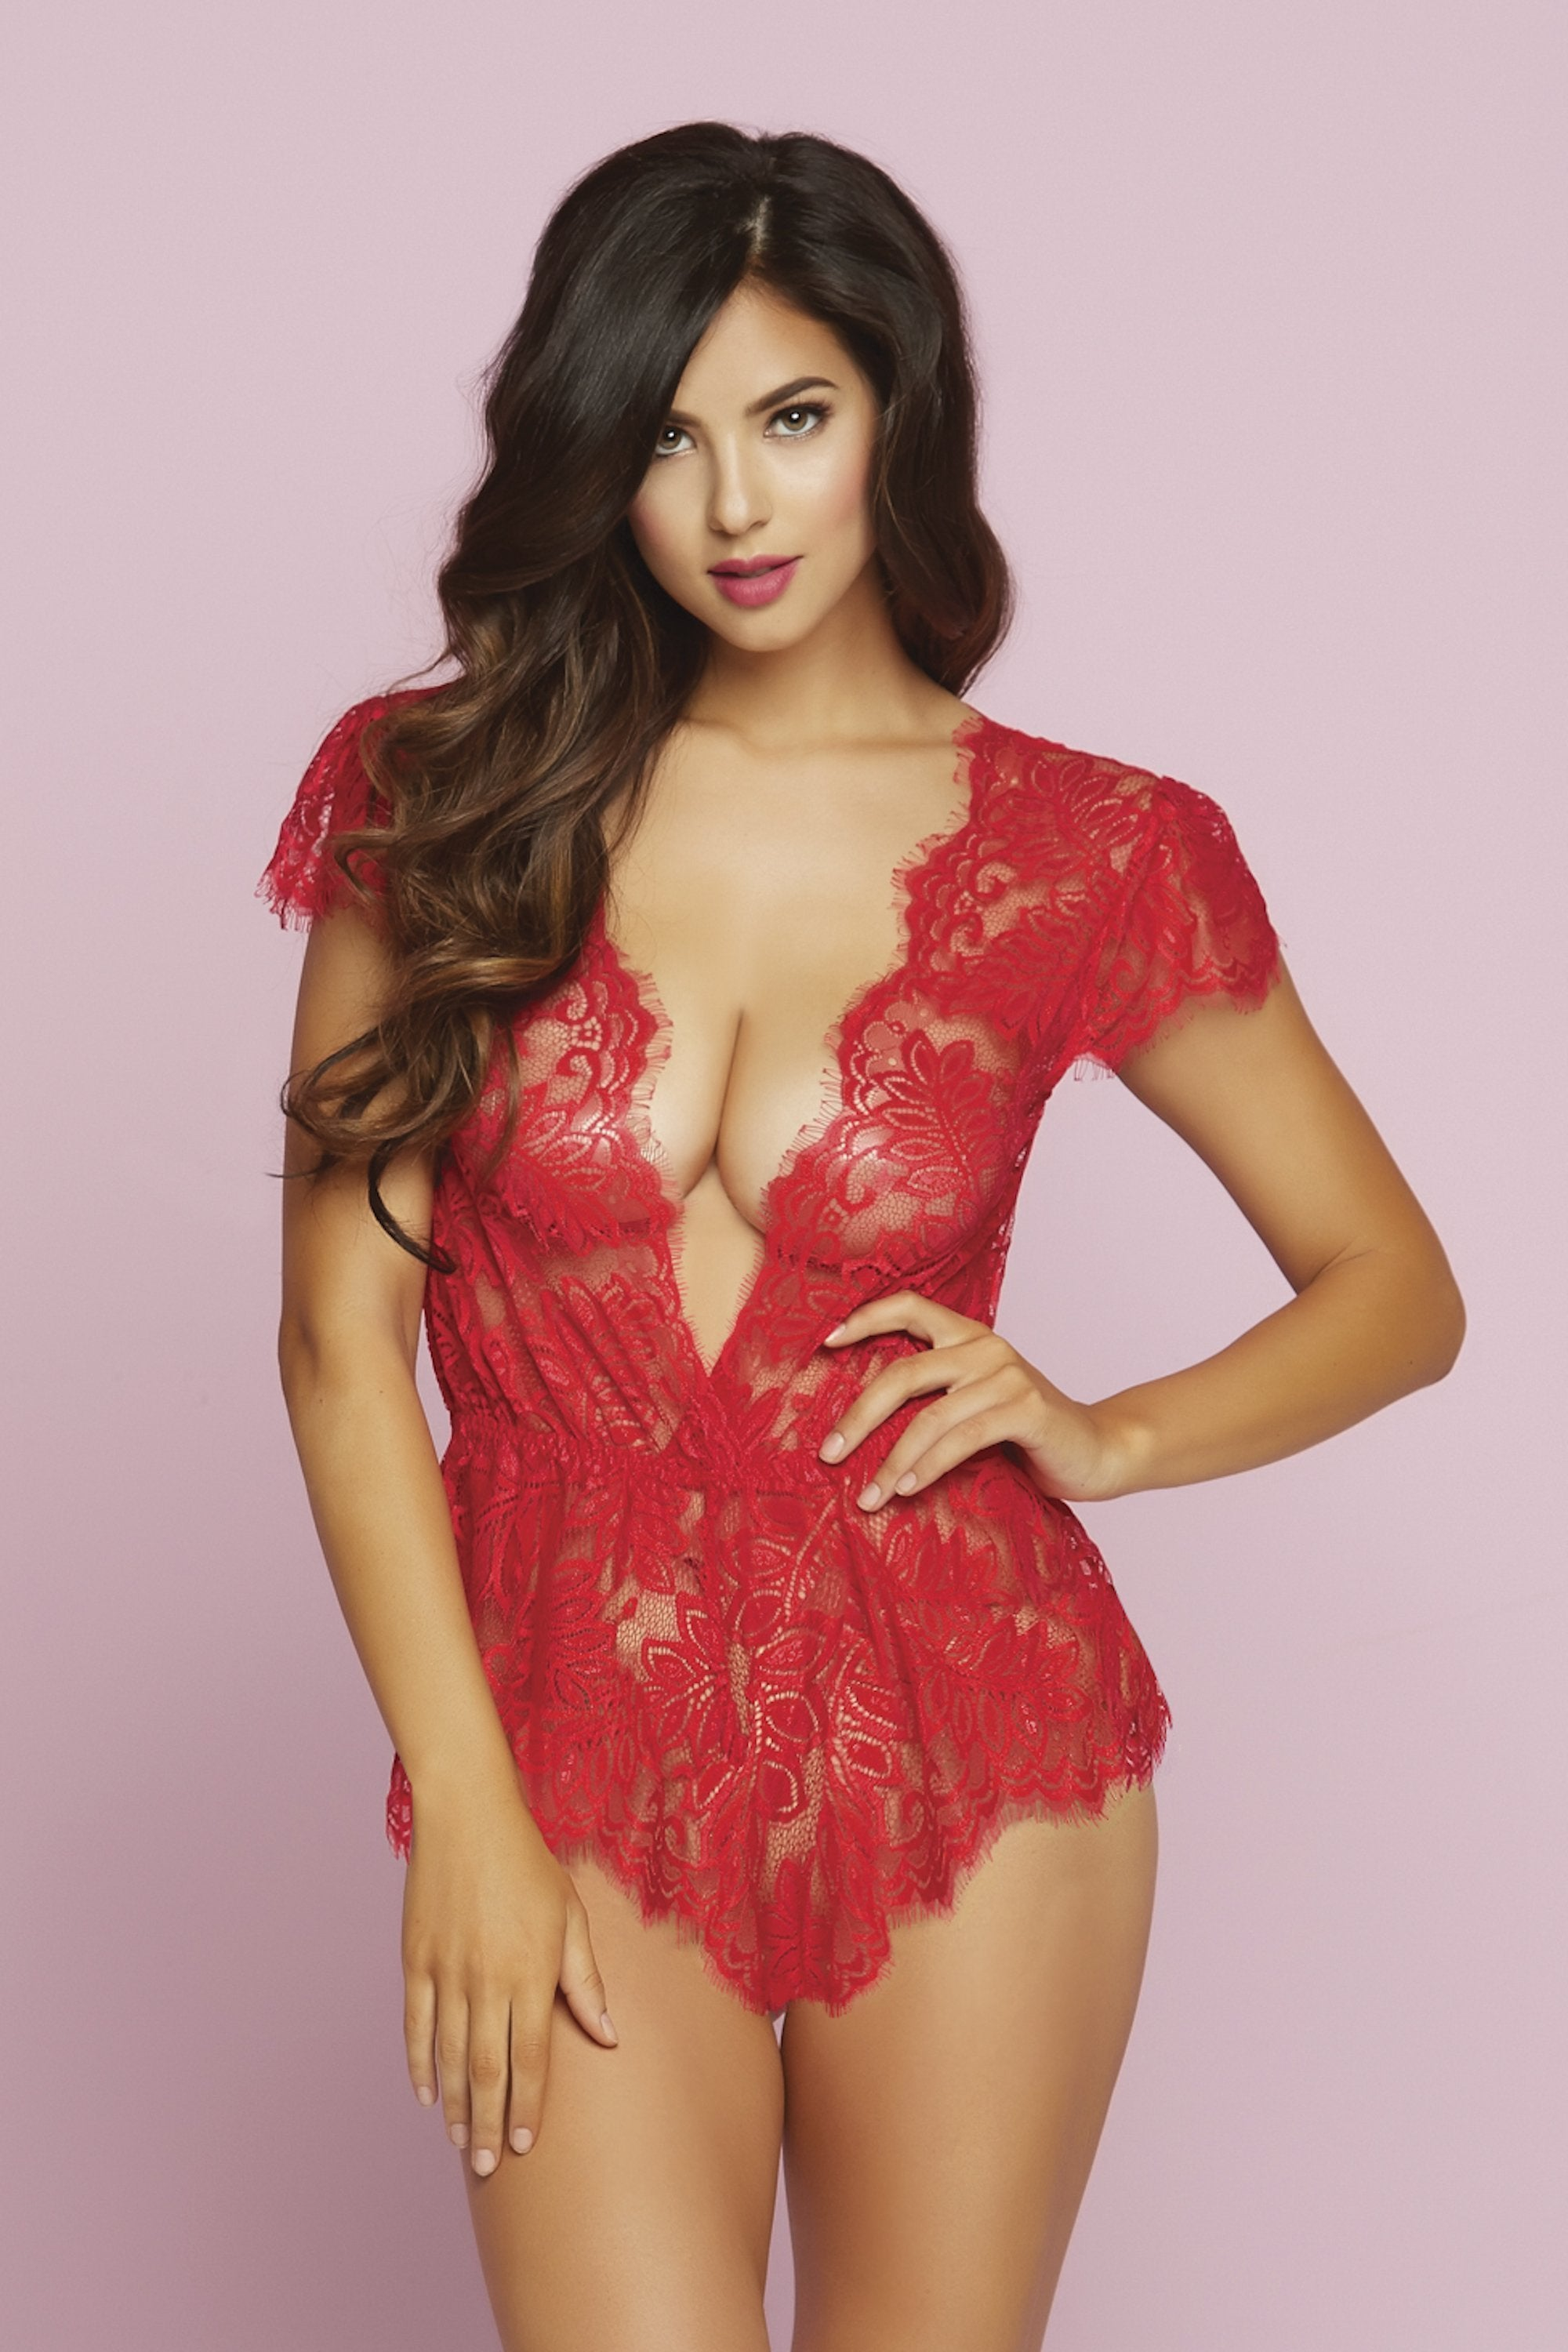 seven til midnight ROMPER SUIT UK 6-8 / Red Red Eyelash Lace Romper with Plunging Neckline